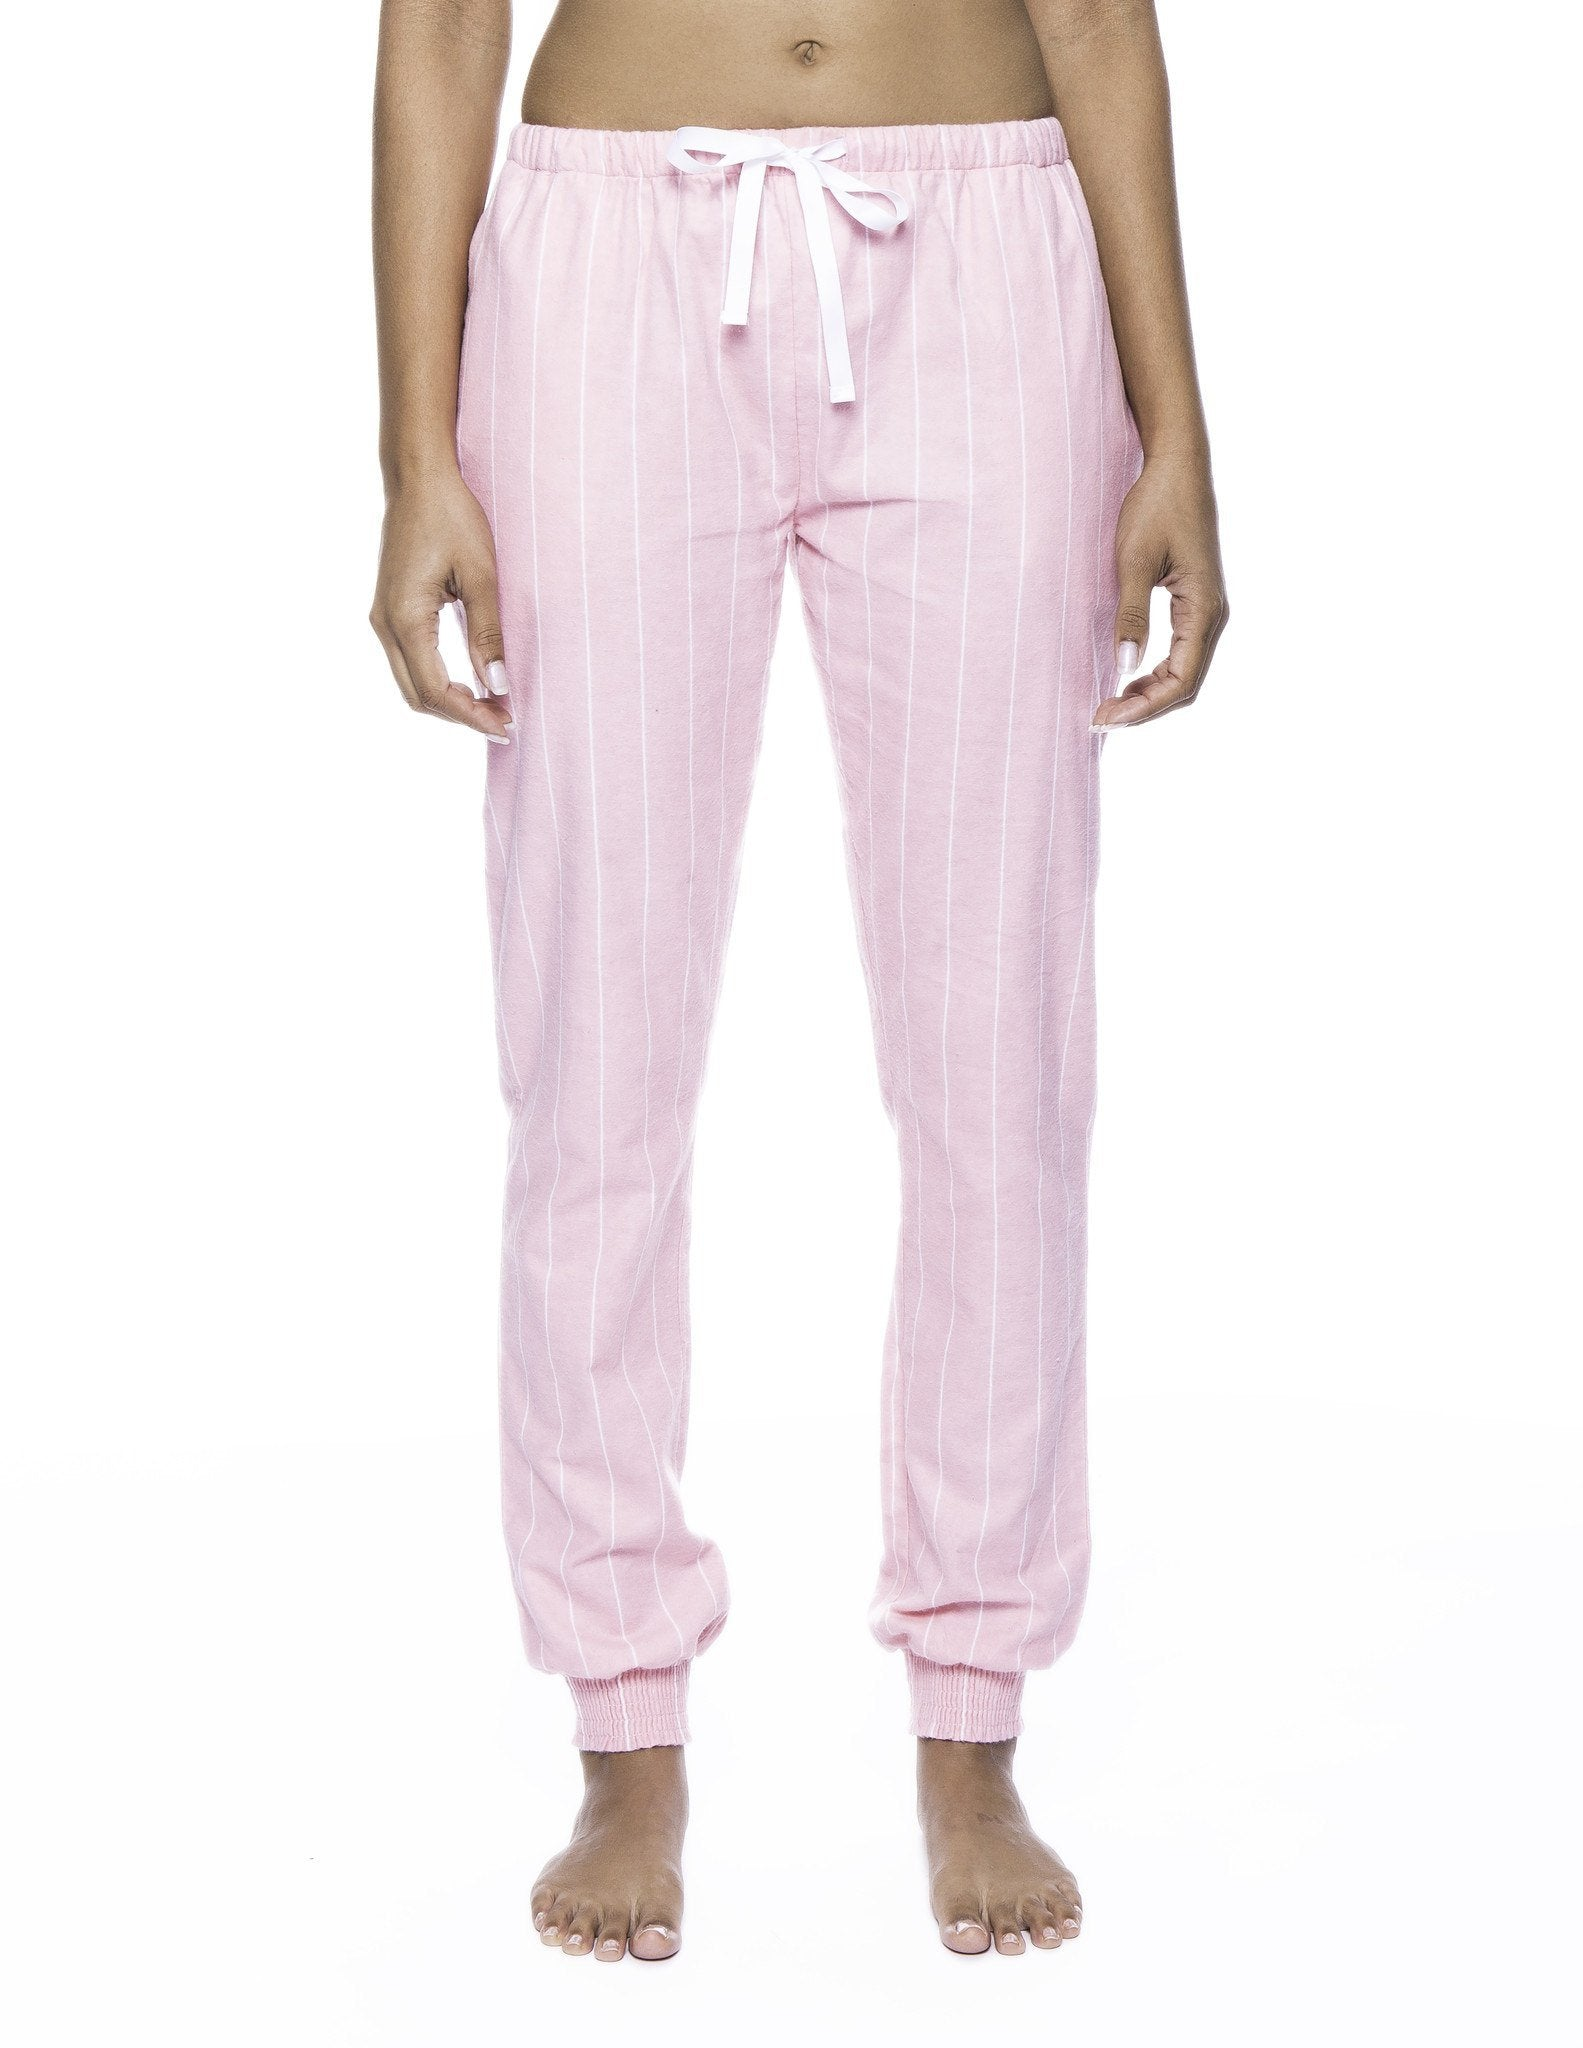 Women's Premium Flannel Jogger Lounge Pants - Stripes Pink